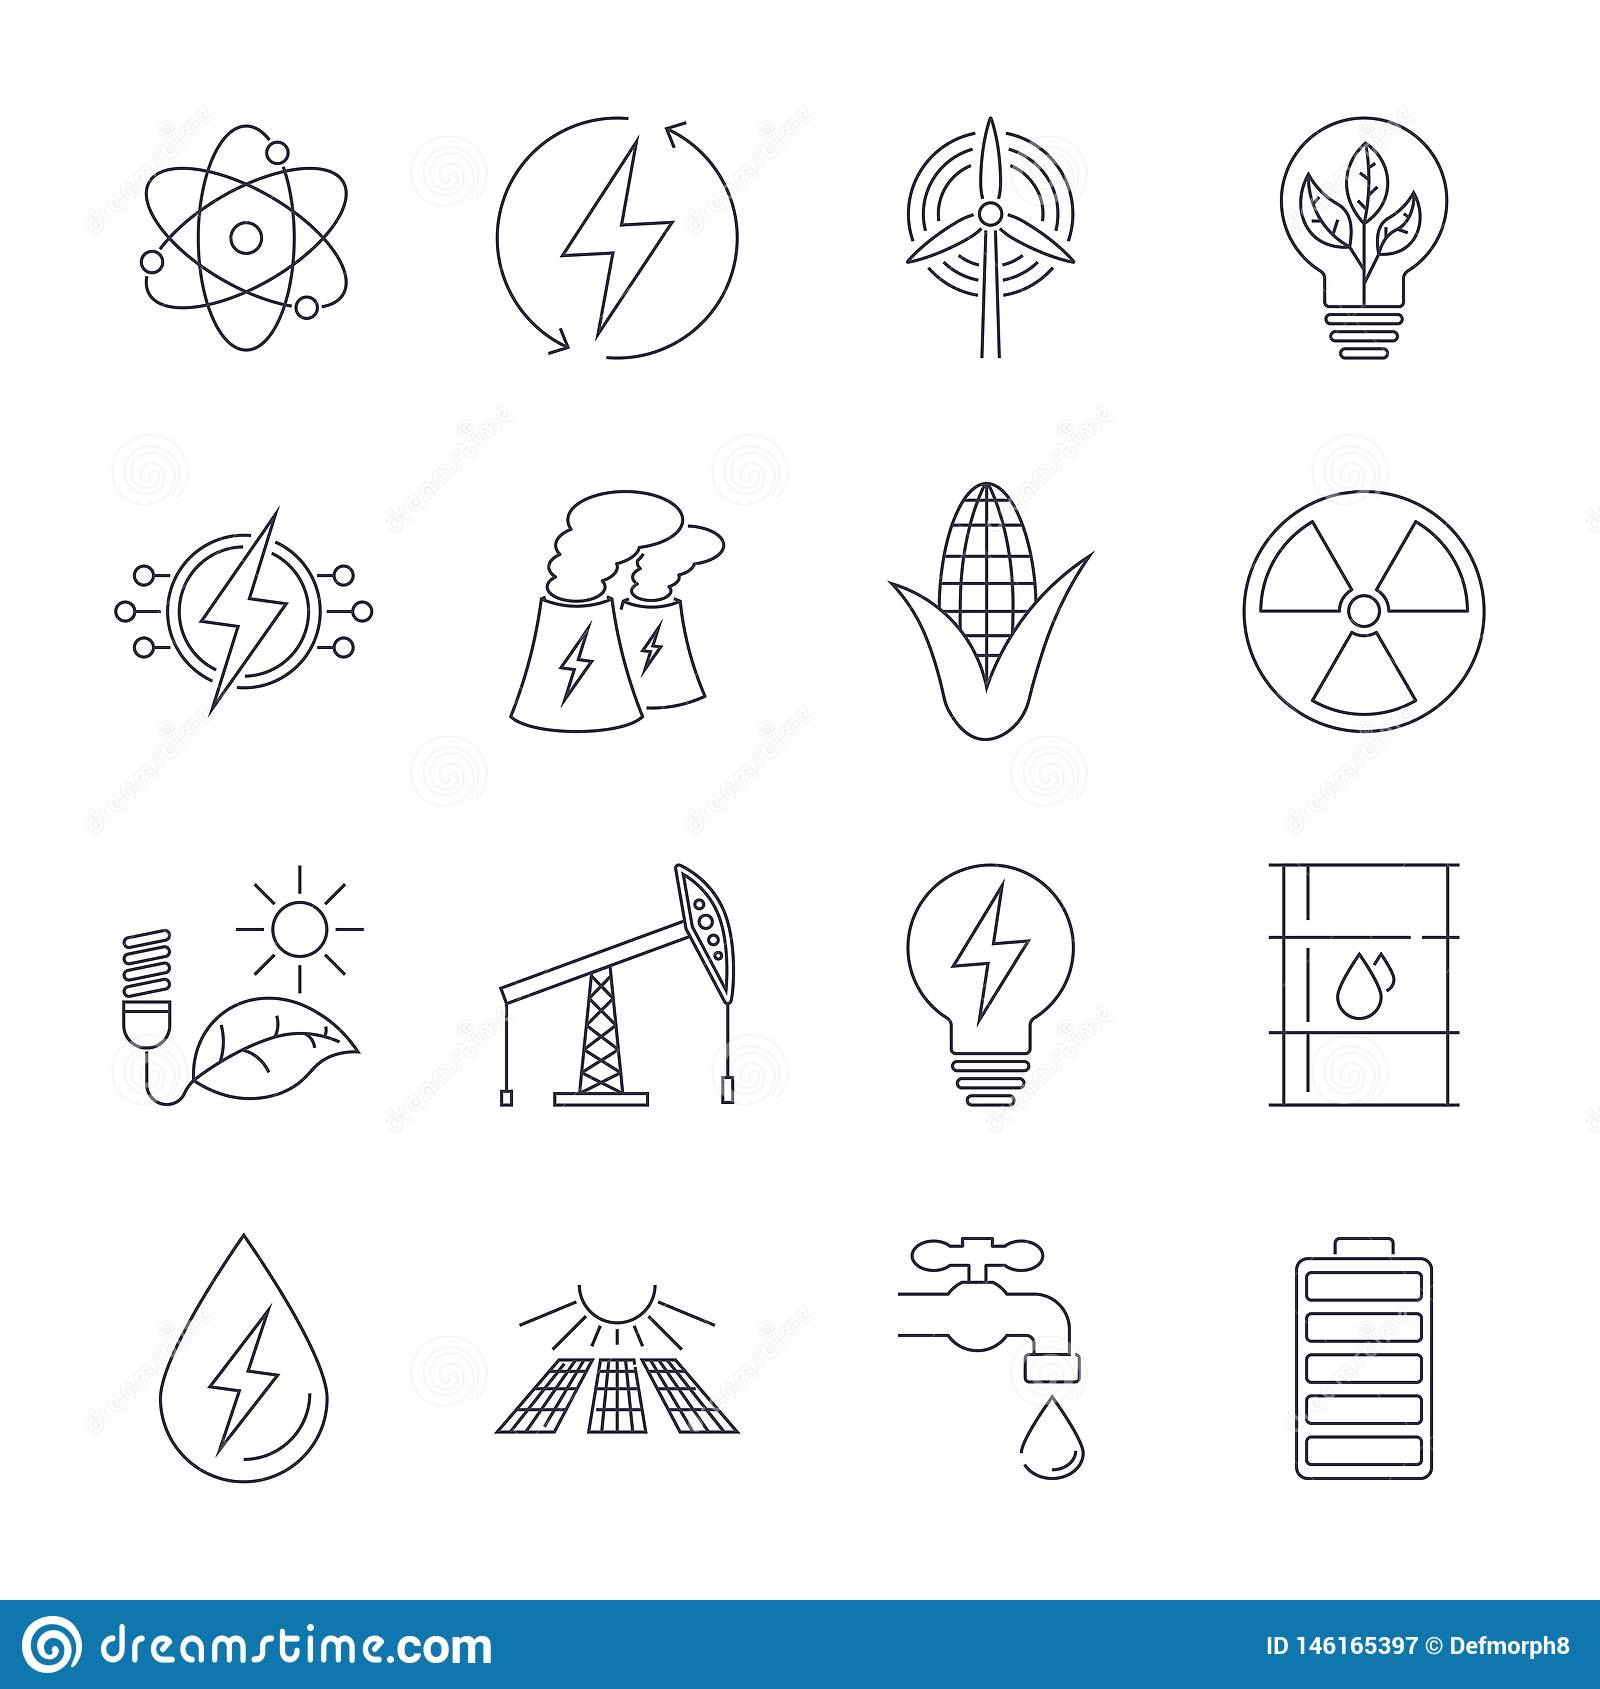 Thin line icons set. Icons for renewable energy, green technology